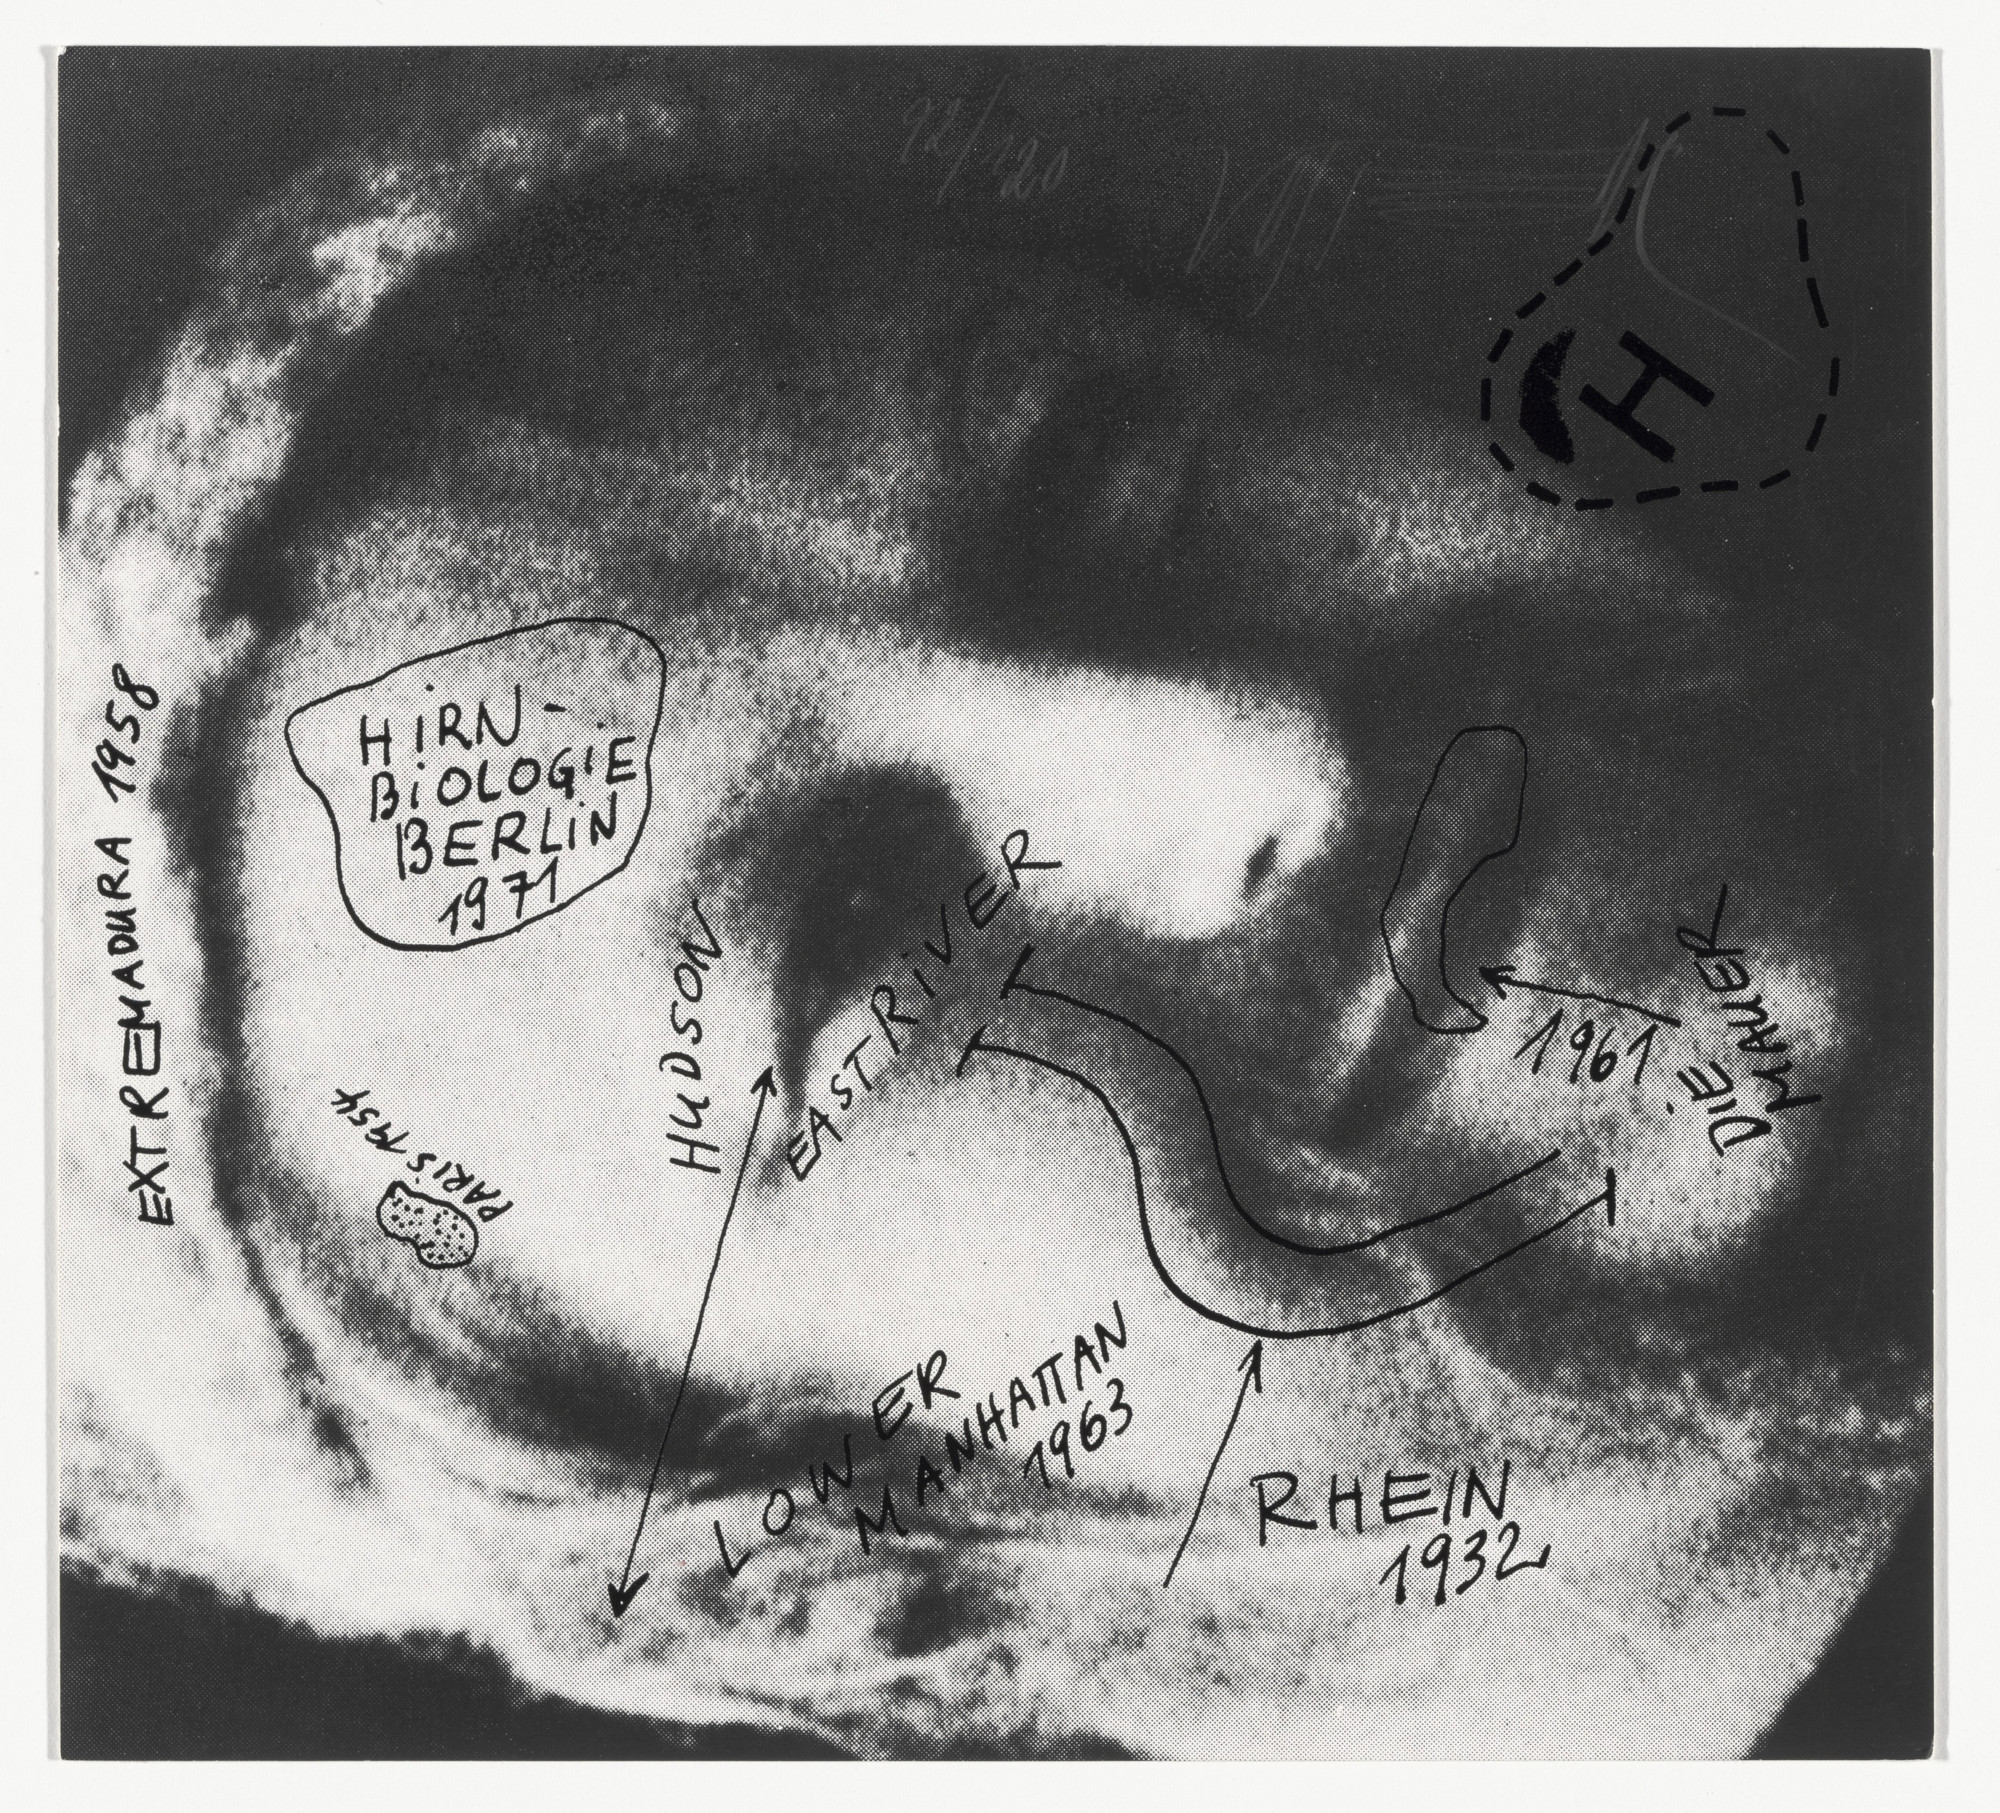 Wolf Vostell Self Portrait Selbstbildnis From Graphics Of